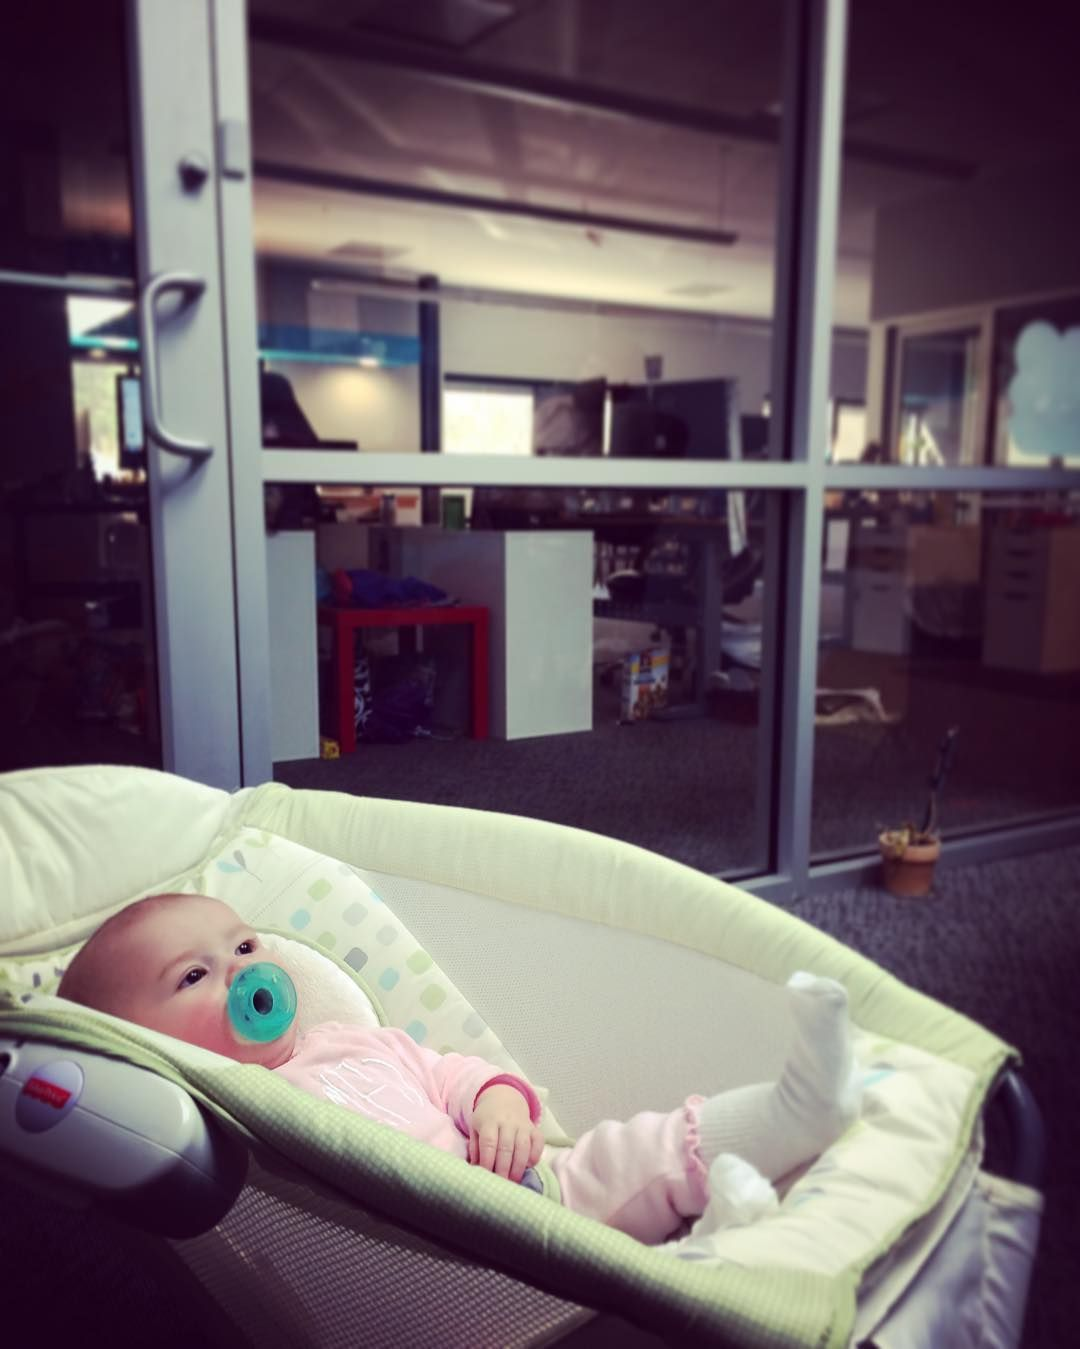 Excited to have a surprise visitor this afternoon! Thanks @johntflowers for bringing in #maddiejoy. We'd put her to work but she's way to cute for that! #frontierlabelbabies #cutenessoverload #wecanteven